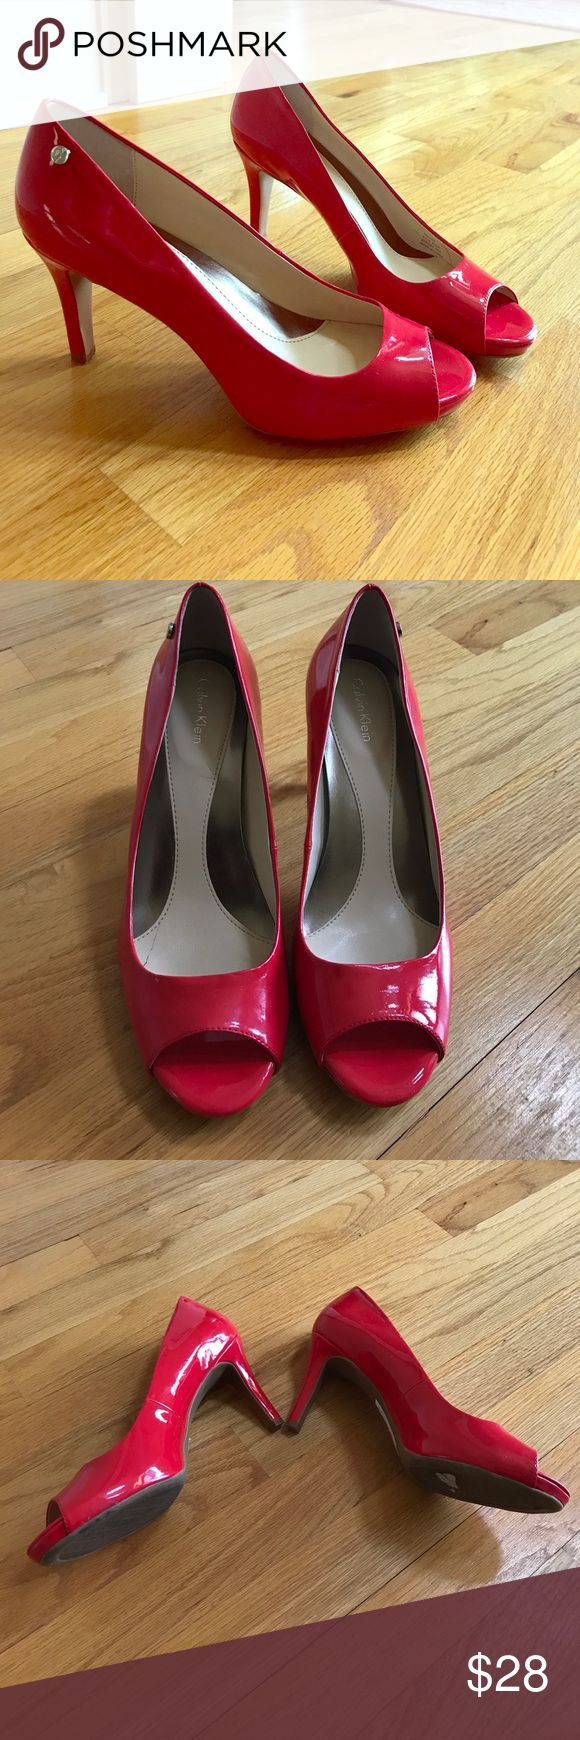 "Calvin Klein Red Patent Peeptoe Pumps Stunning red Calvin Klein Patent peeptoe pumps that will dress up your style! These previously loved shoes will turn heads wherever you go! Slip these on and you'll be ready for your next destination! The shoe shoes mild signs of wear, and some scuffing as pictured. The heel is just shy of 3"". Snag this pair today! Calvin Klein Shoes Heels"